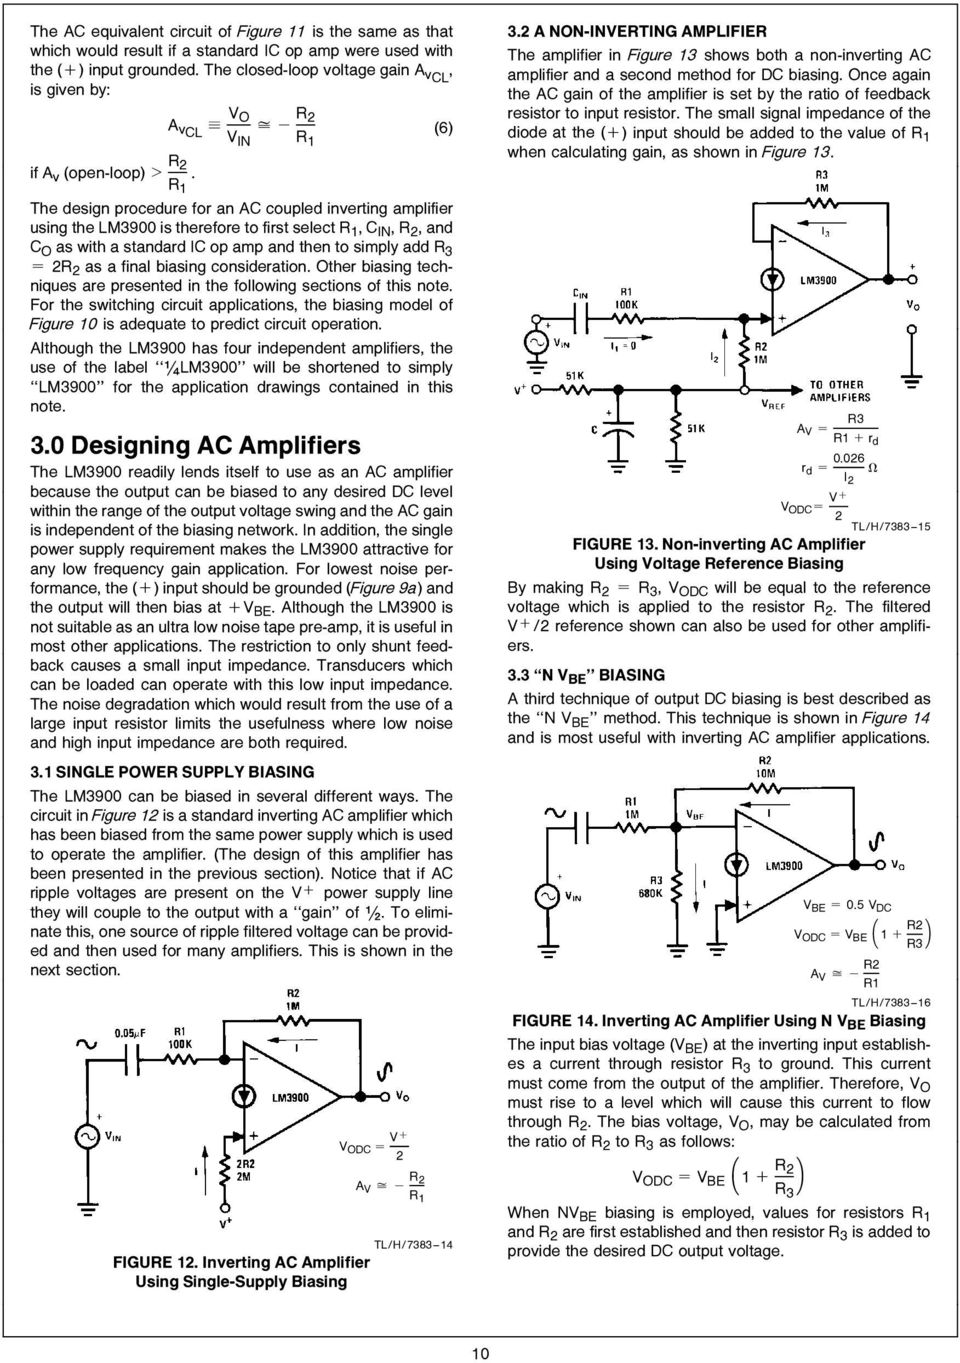 Lm3900 An 72 The A New Current Differencing Quad Of Plus Or Supply Bias Level At Ac Circuit Looks Like Your Basic Inverting Op Amp And Then To Simply Add R 3 E 2r 2 As Final Biasing